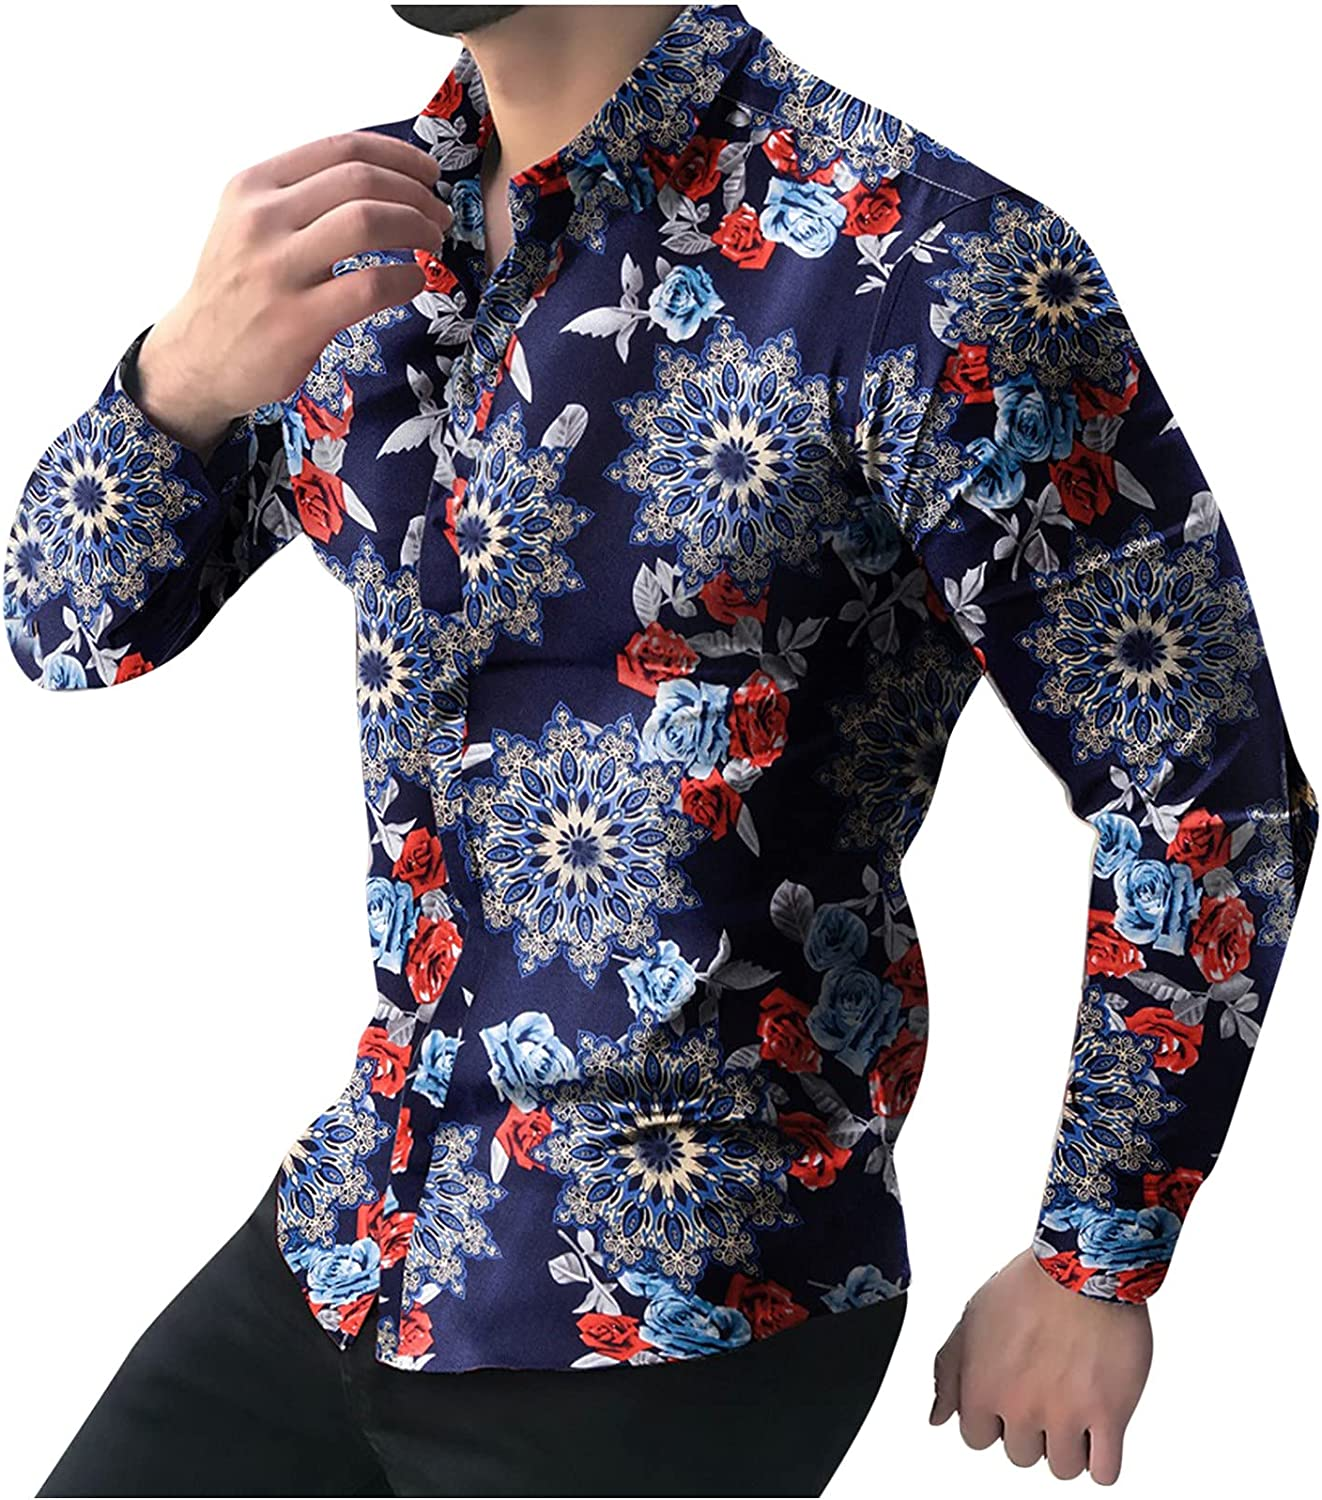 Casual Dress Shirt for Men's Rose Flower Printed Summer Fashion Slim fit Long Sleeve Button-Down Shirt